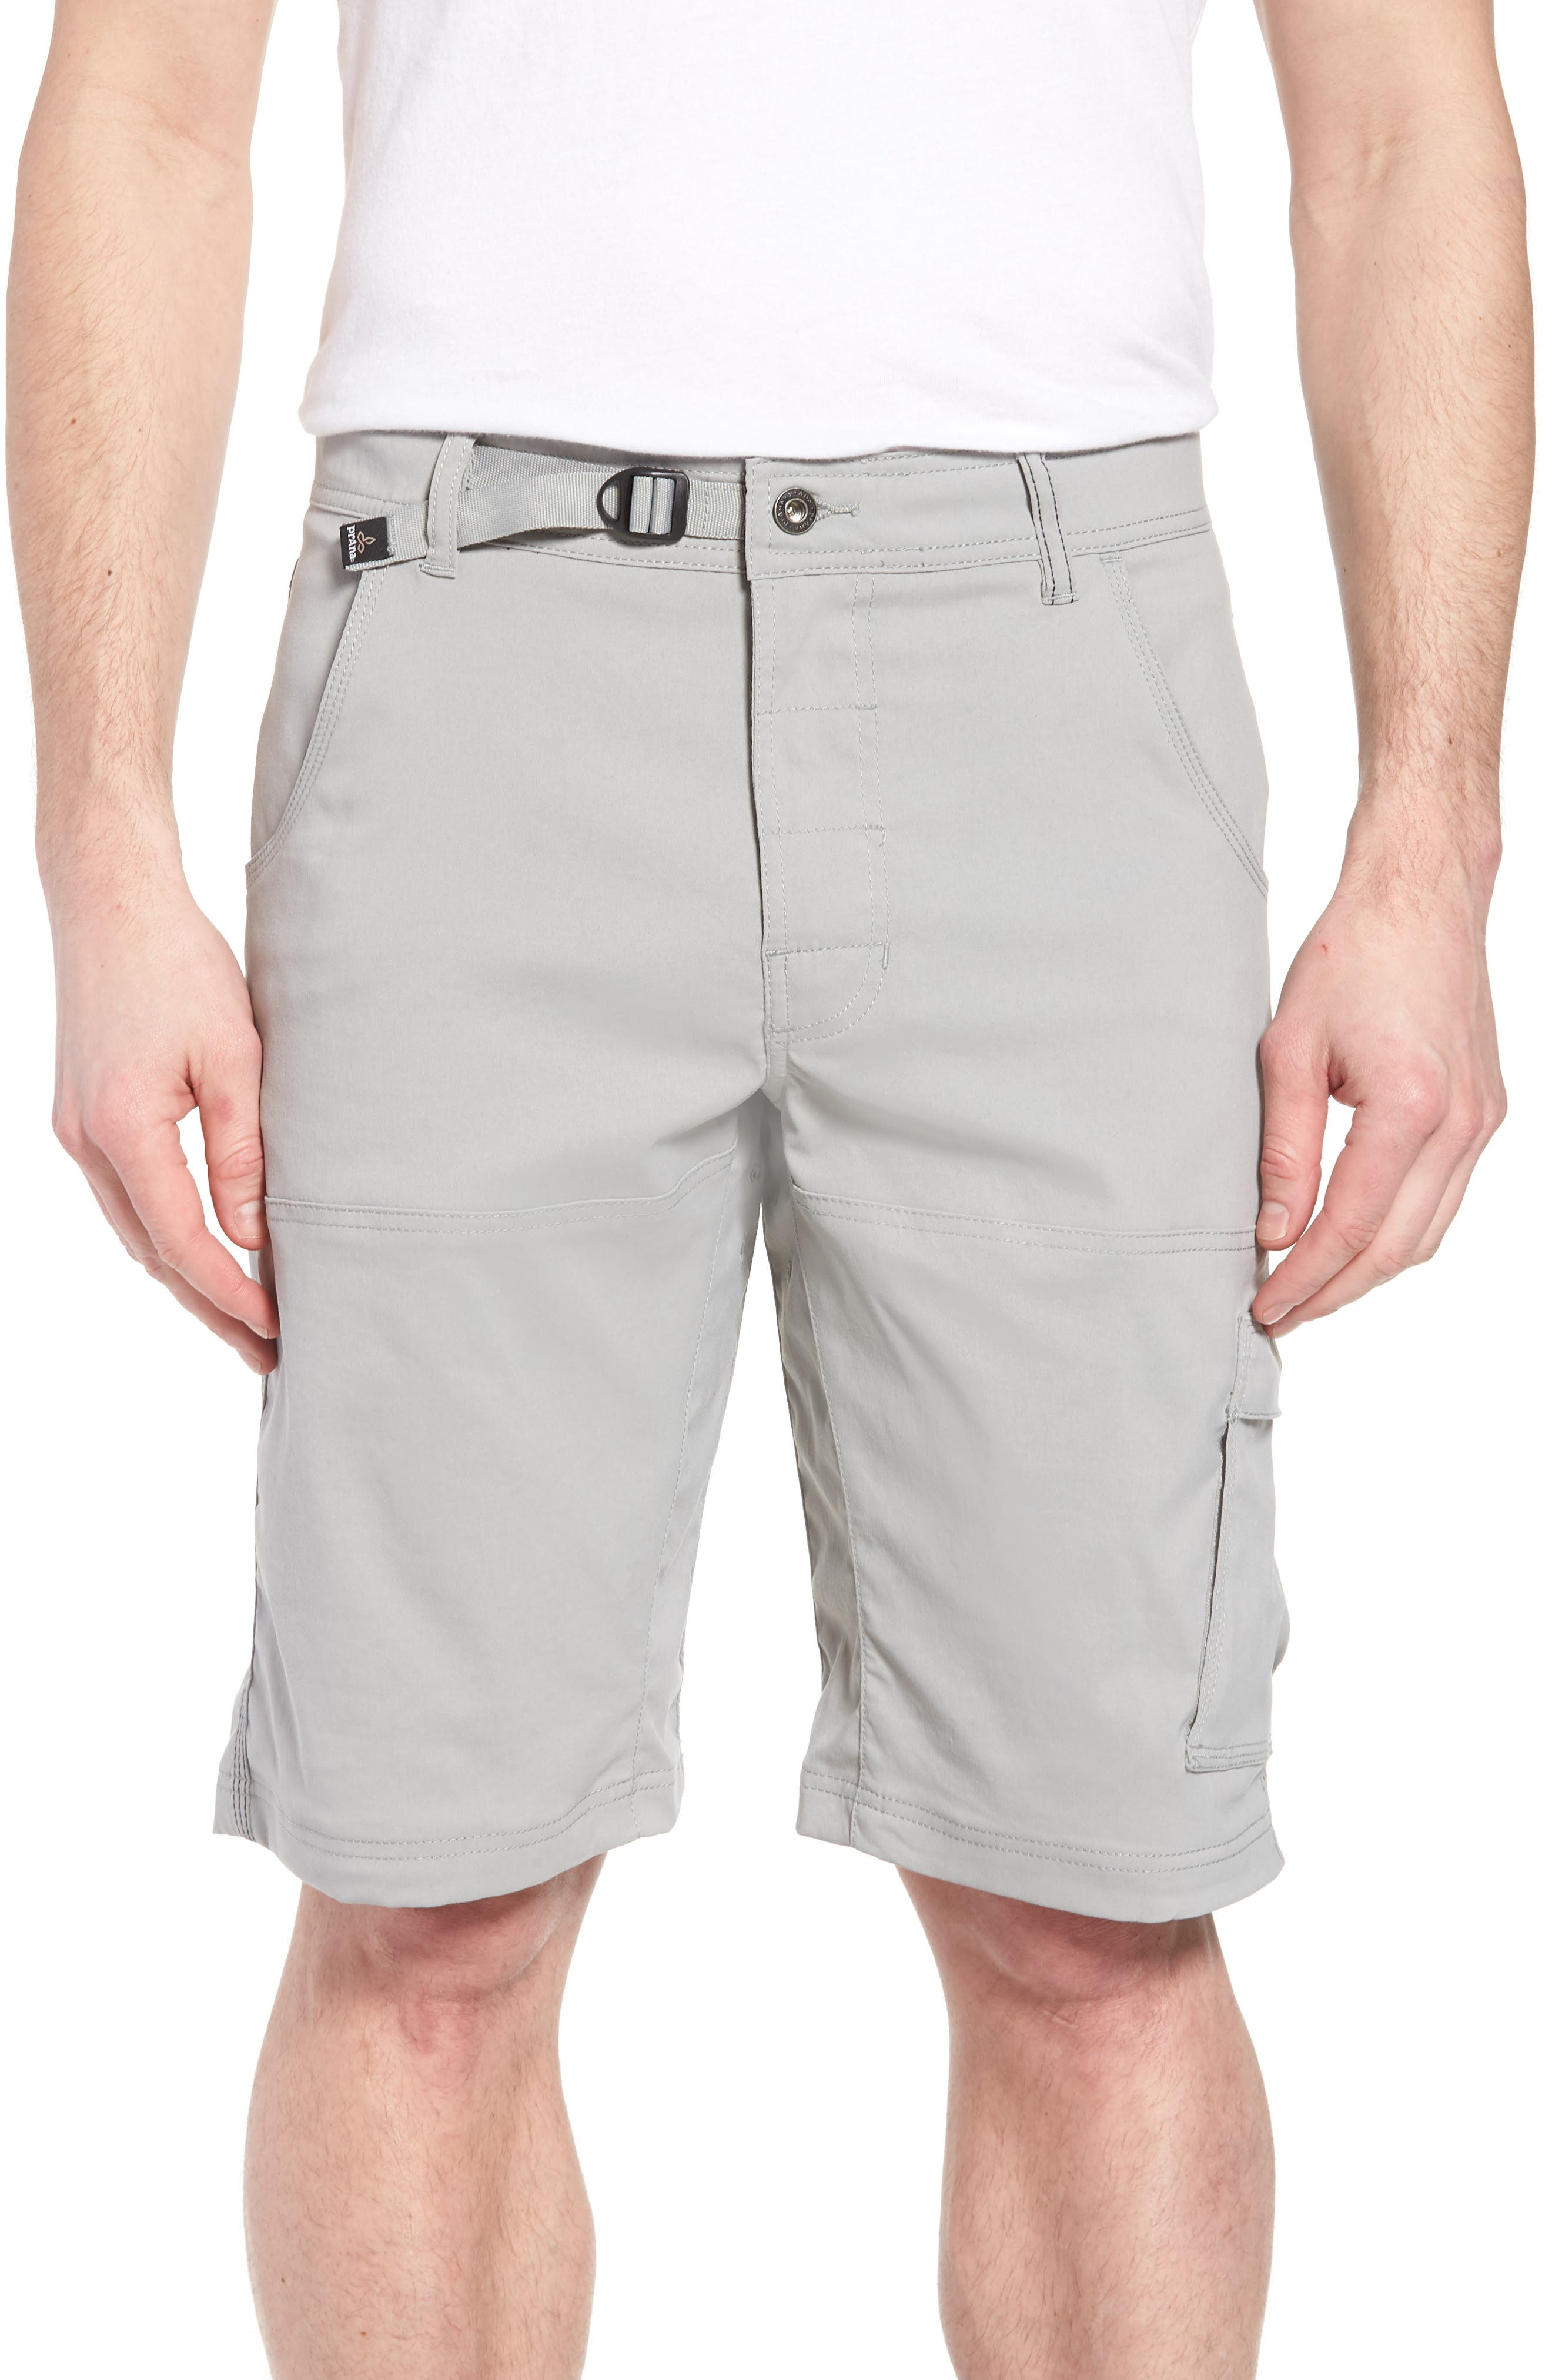 Zion Stretch Shorts,                             Main thumbnail 1, color,                             020